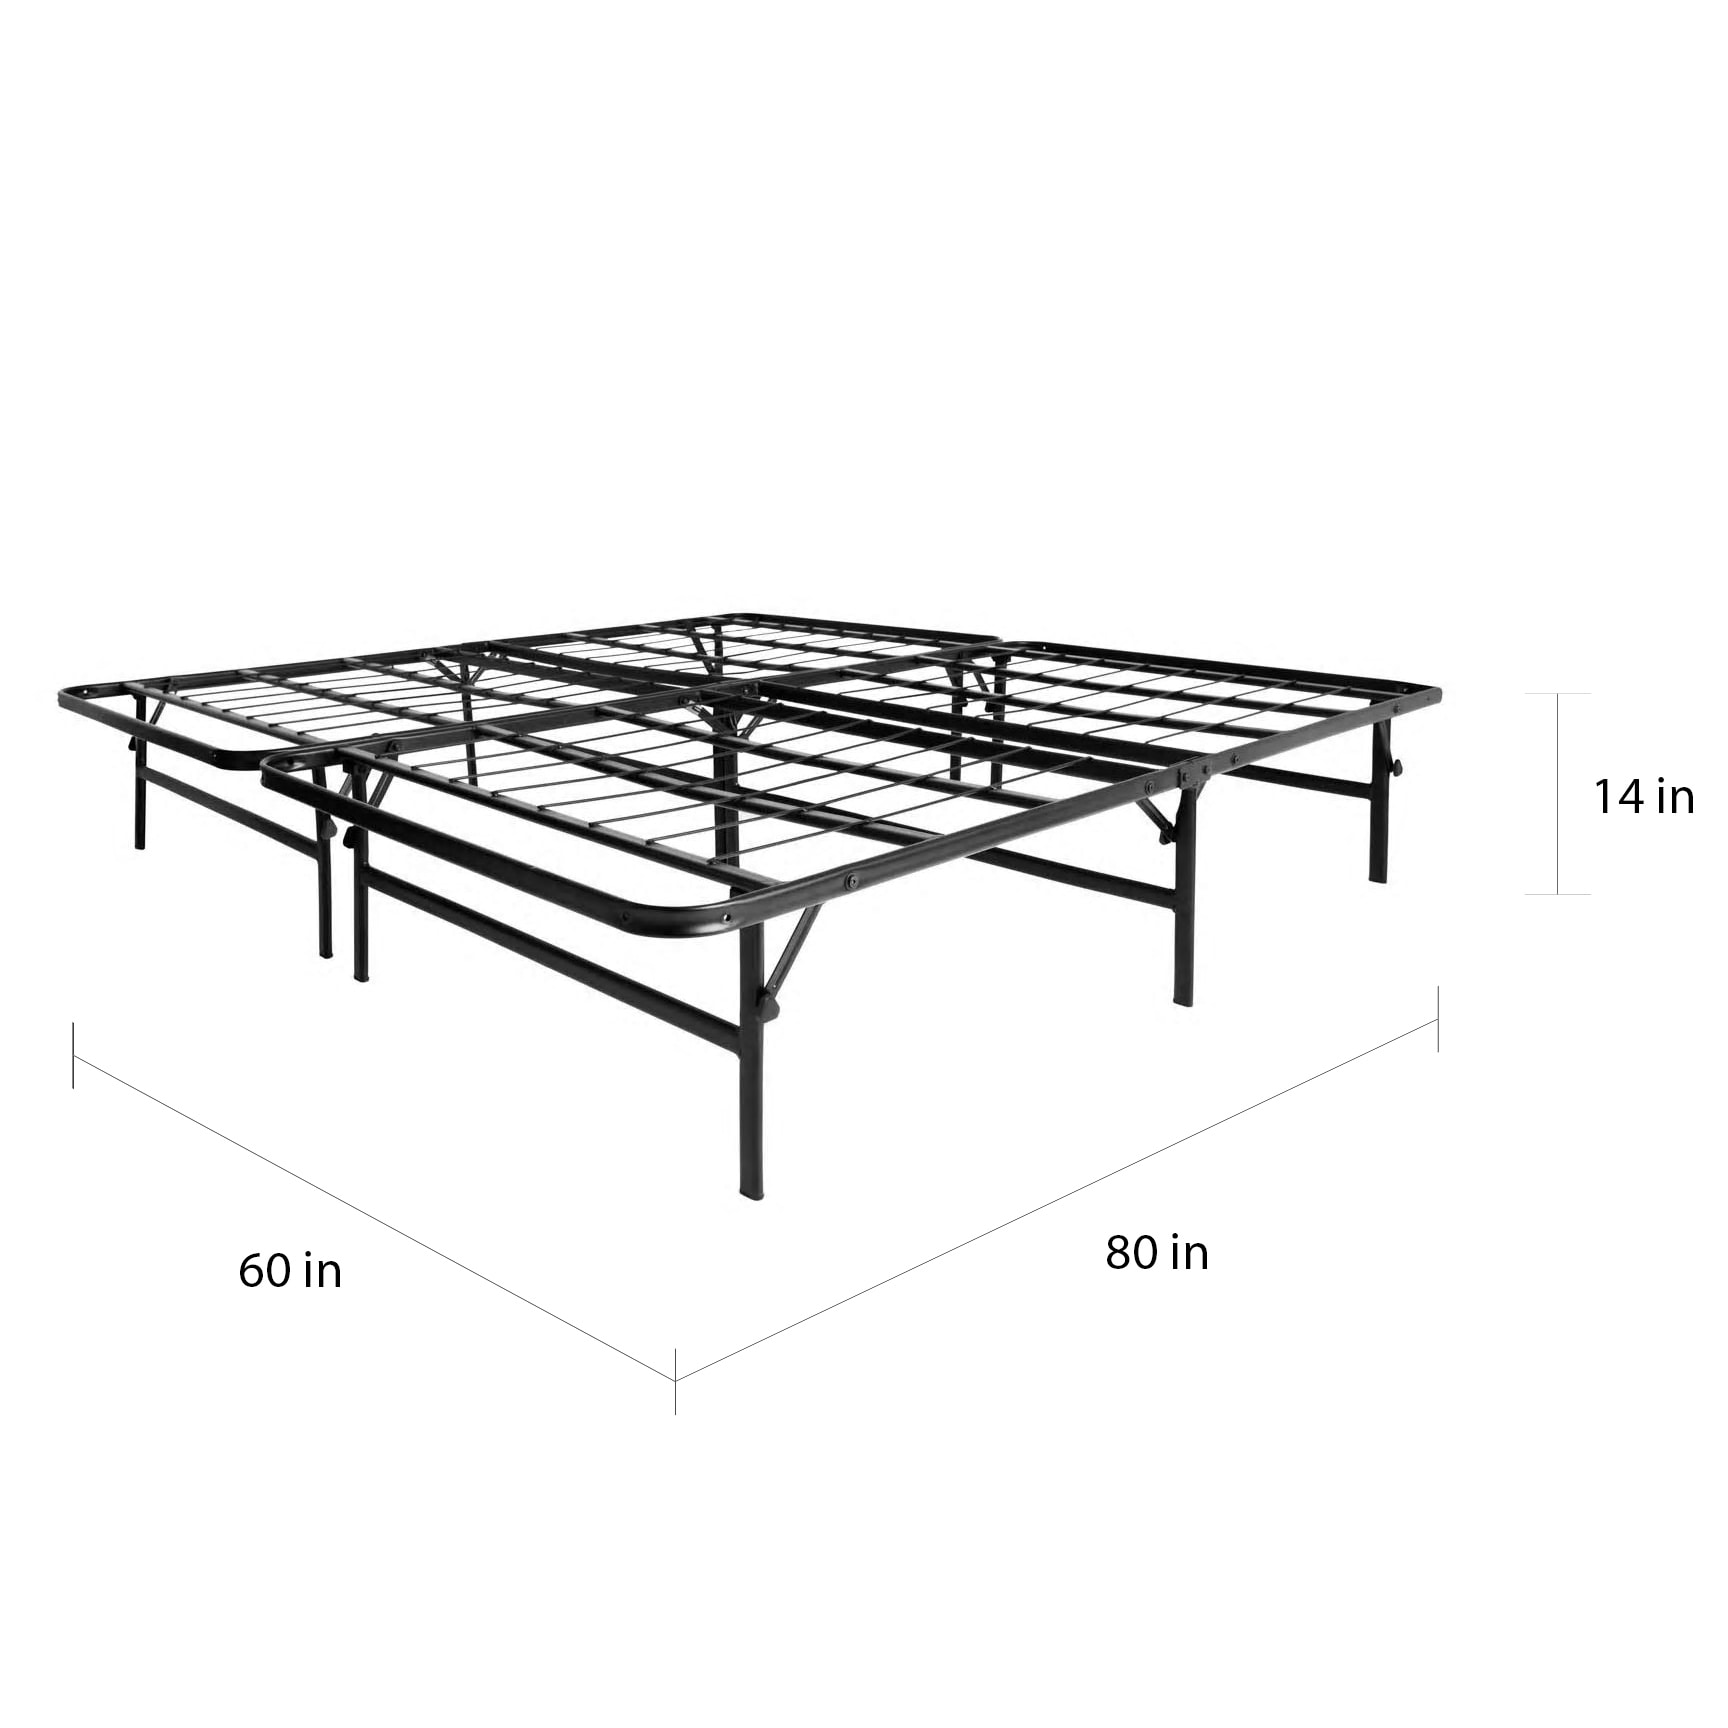 Image of: Shop Black Friday Deals On Foldable Metal Platform Bed Frame And Mattress Foundation Queen By Lucid Comfort Collection Overstock 10756074